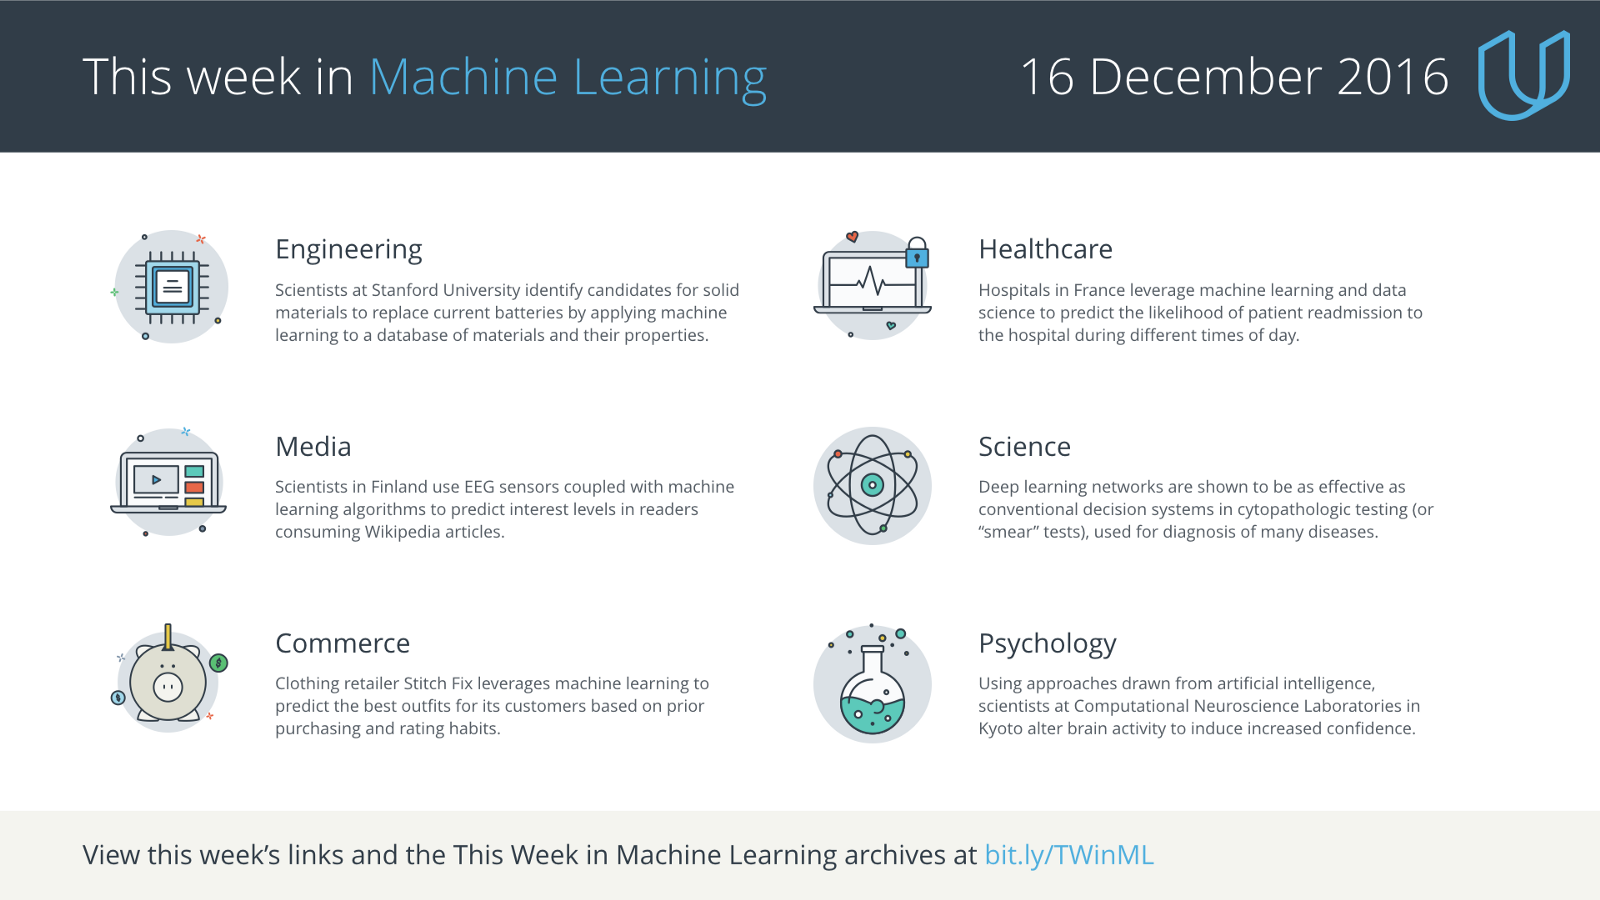 This Week in Machine Learning 16 December 2016